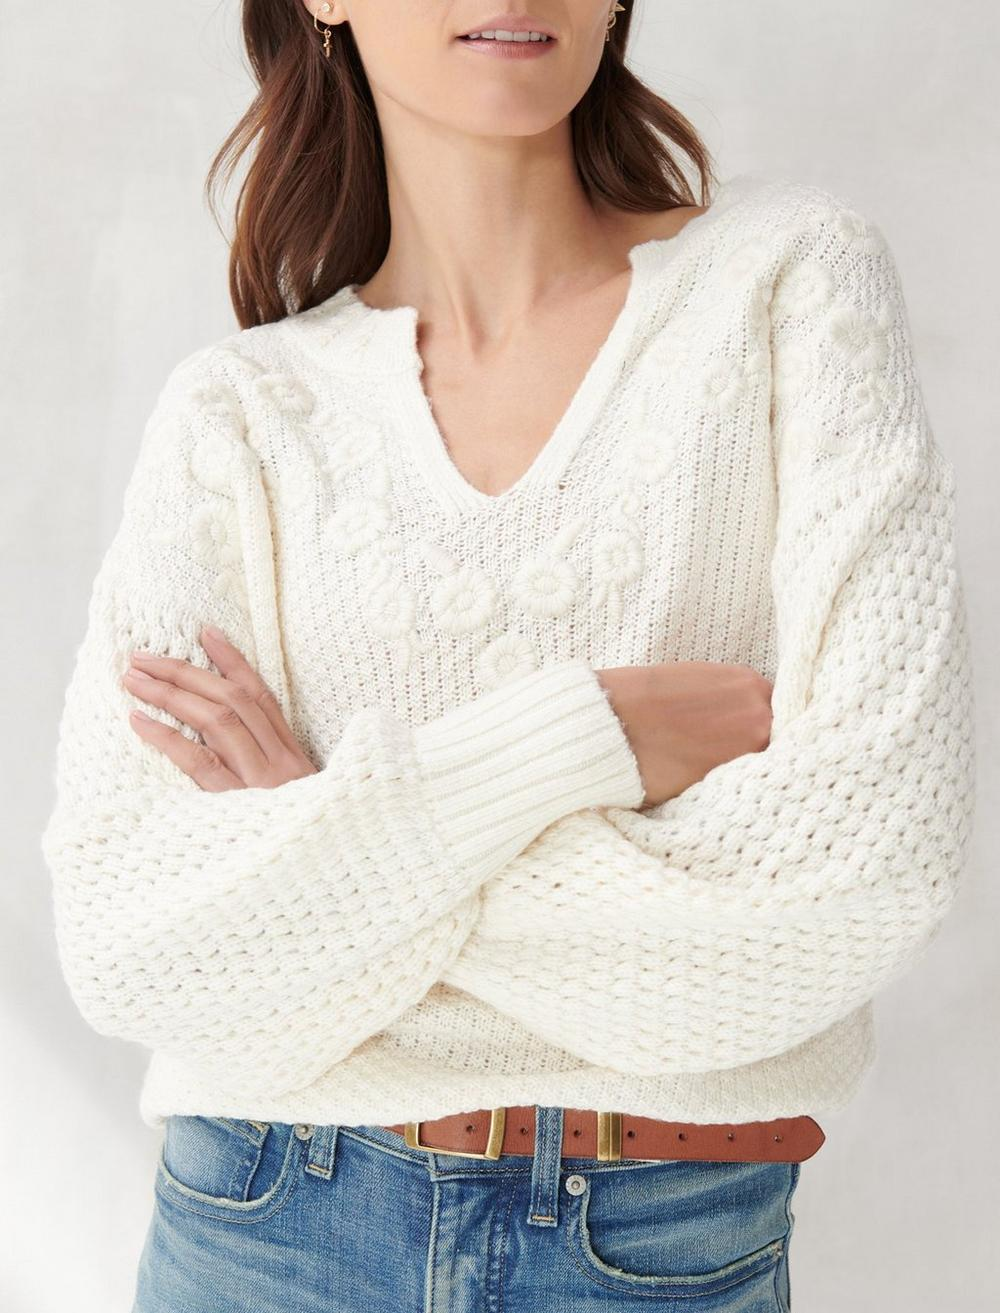 EMBROIDERED NOTCH NECK SWEATER, image 5